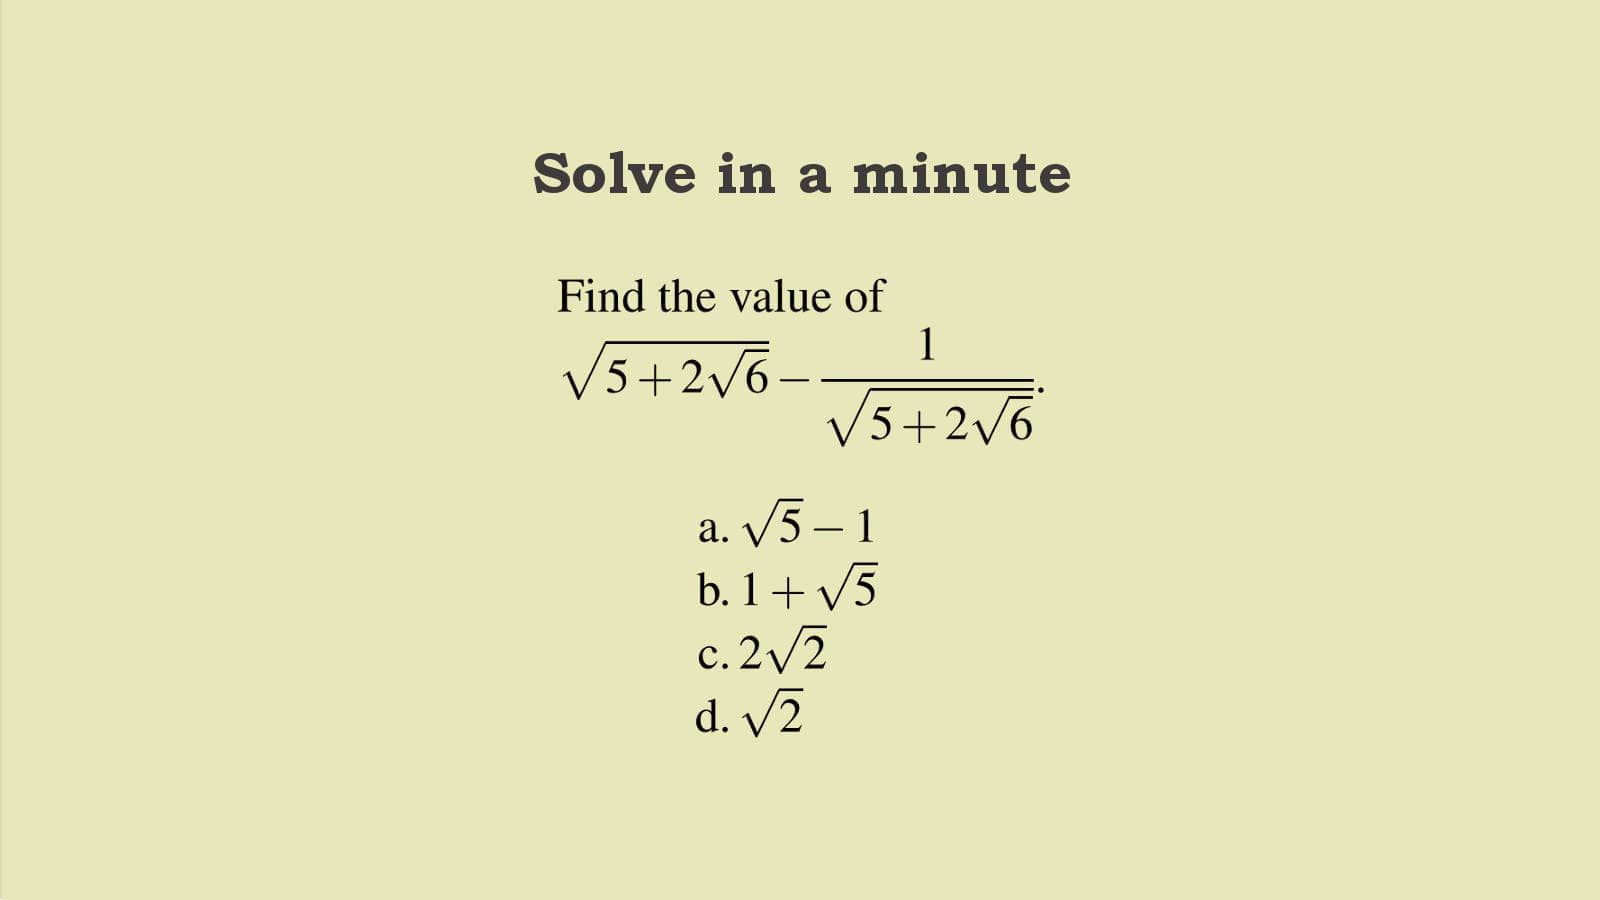 Pin By Suresolv On Tutorials In Basic Maths Concepts Techniques In 2020 Basic Math Solving Math Questions [ 900 x 1600 Pixel ]